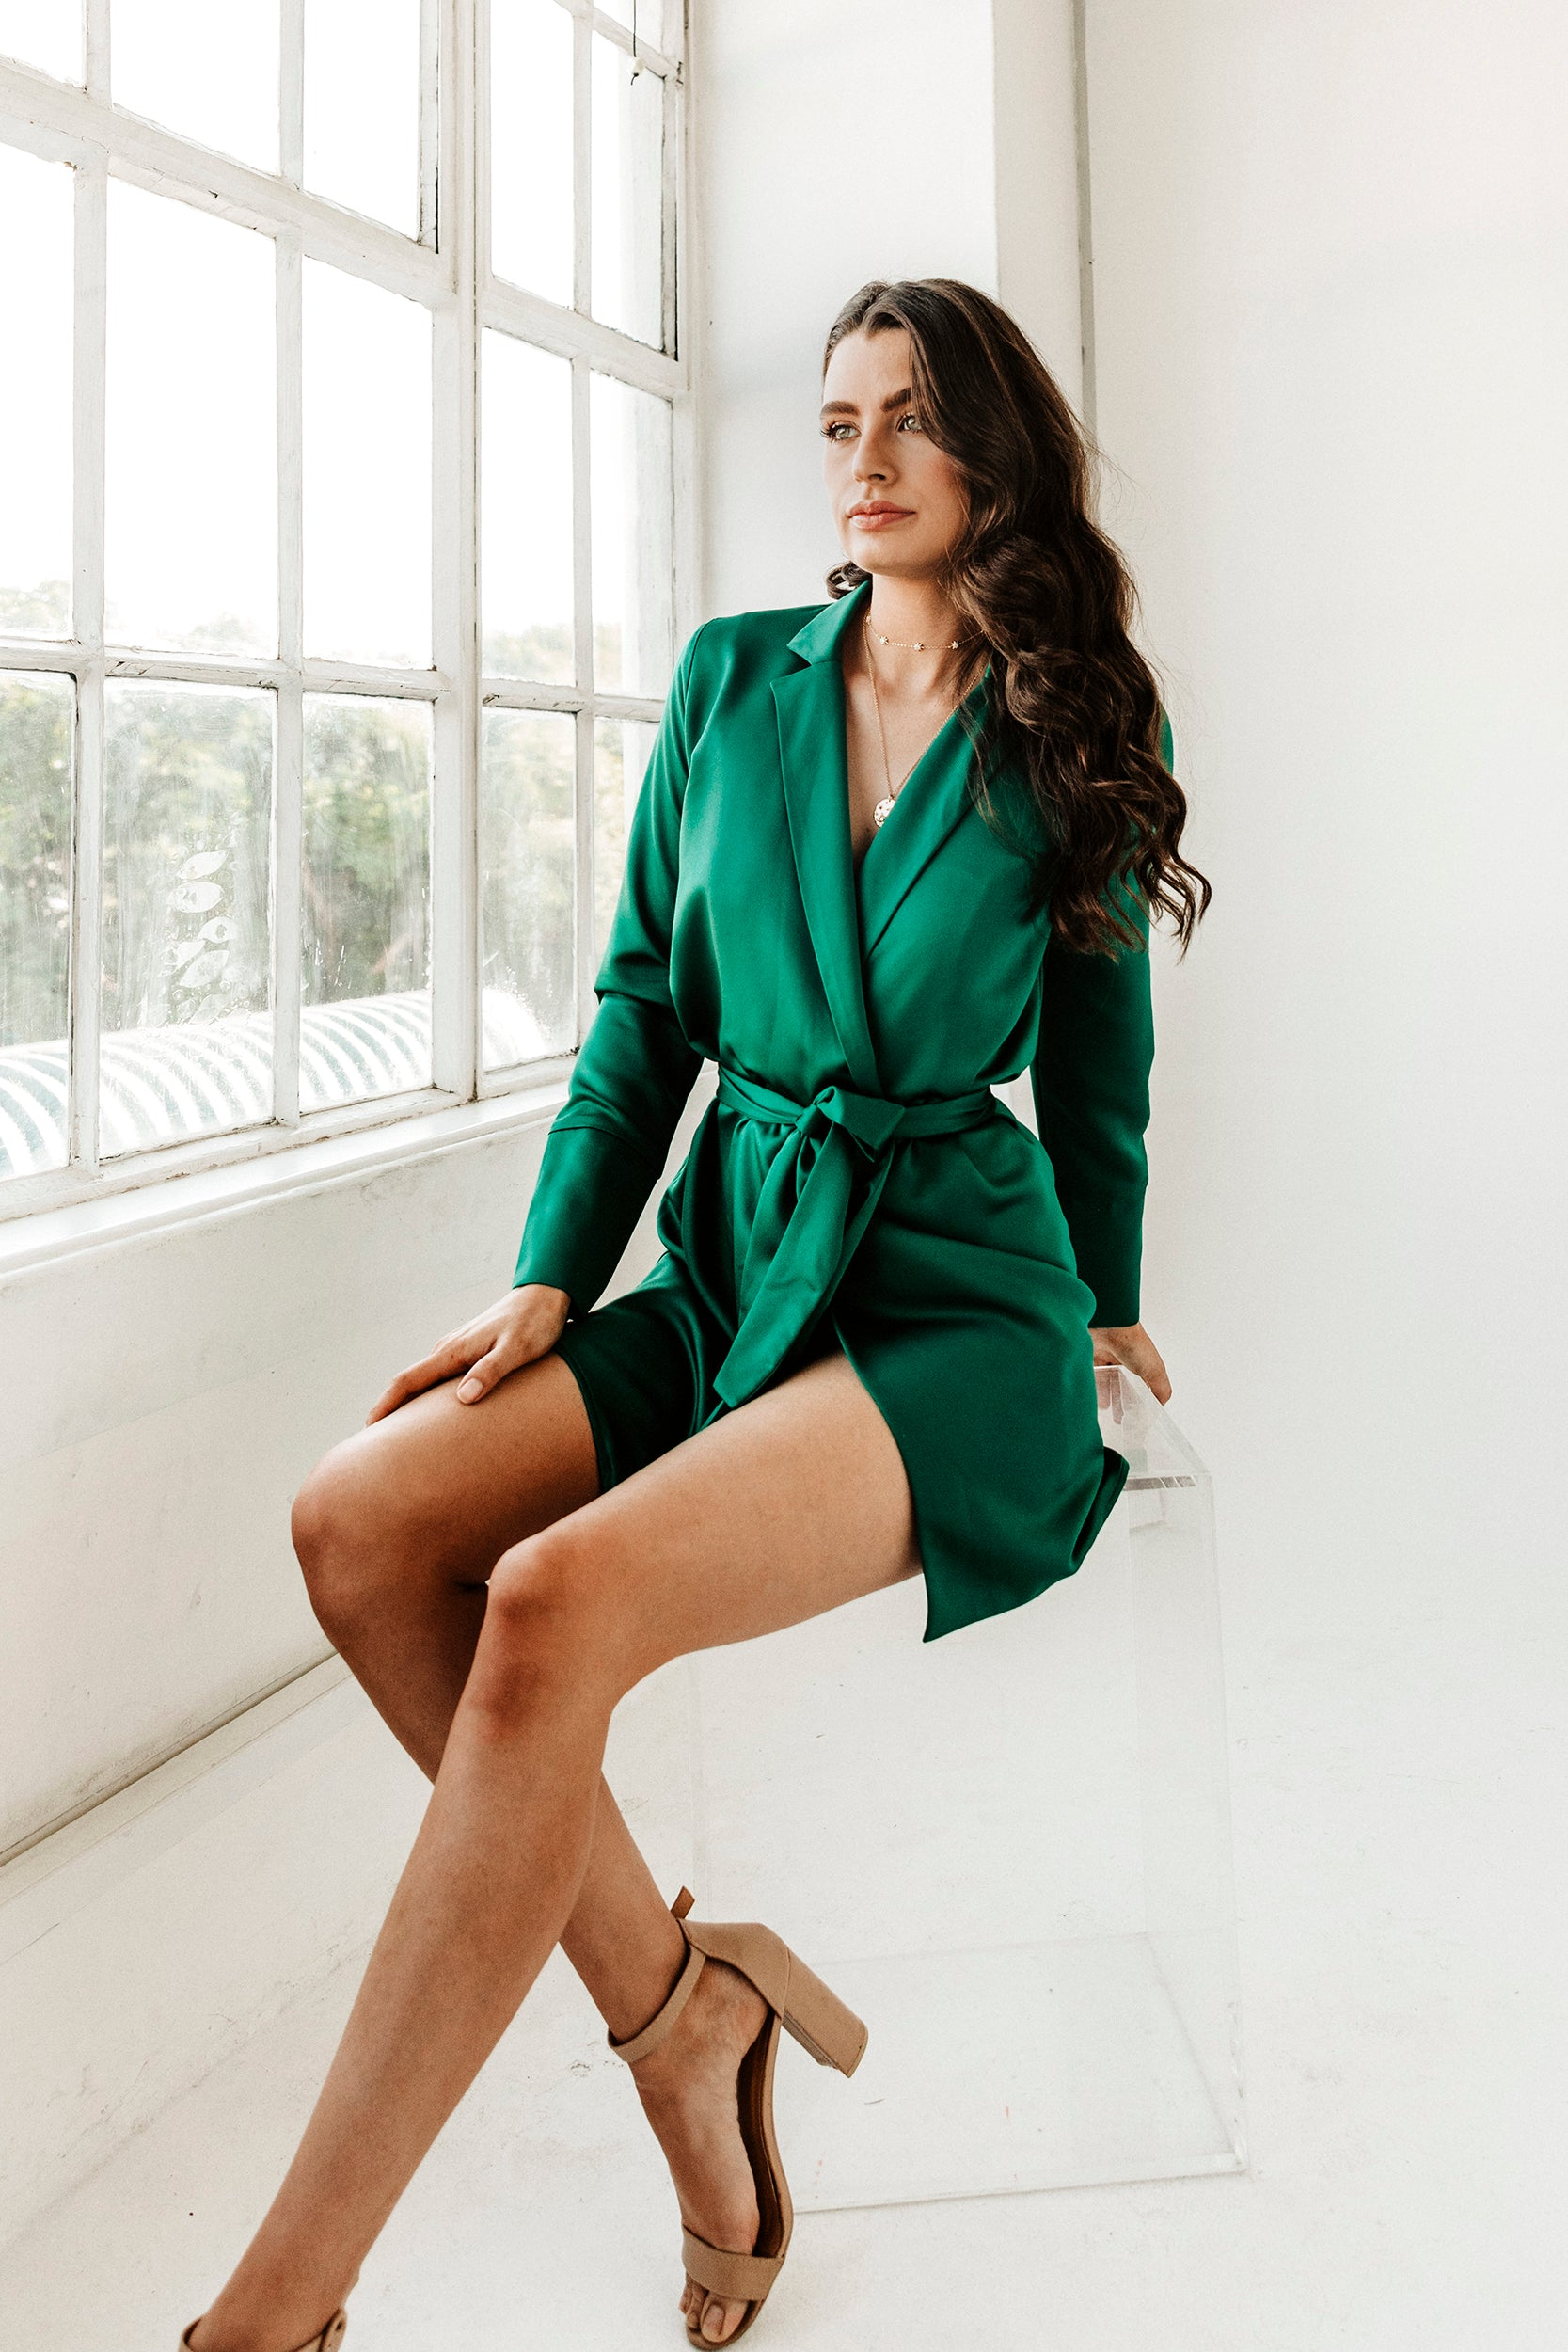 suitress jacket dress